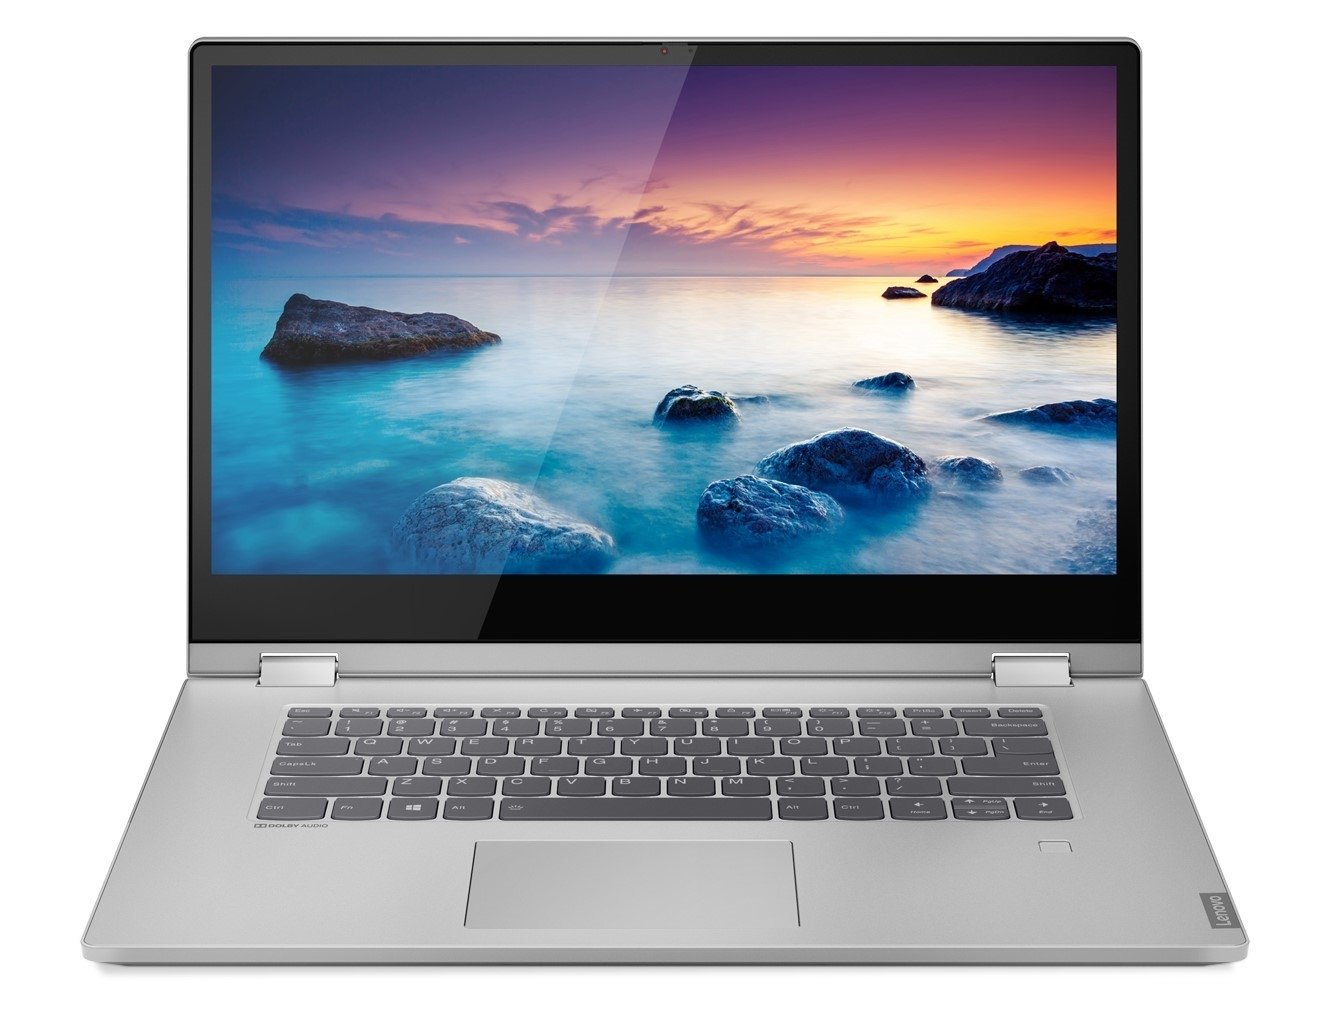 Lenovo IdeaPad C340 15.6in Pentium 4GB 128GB 2-in-1 Laptop